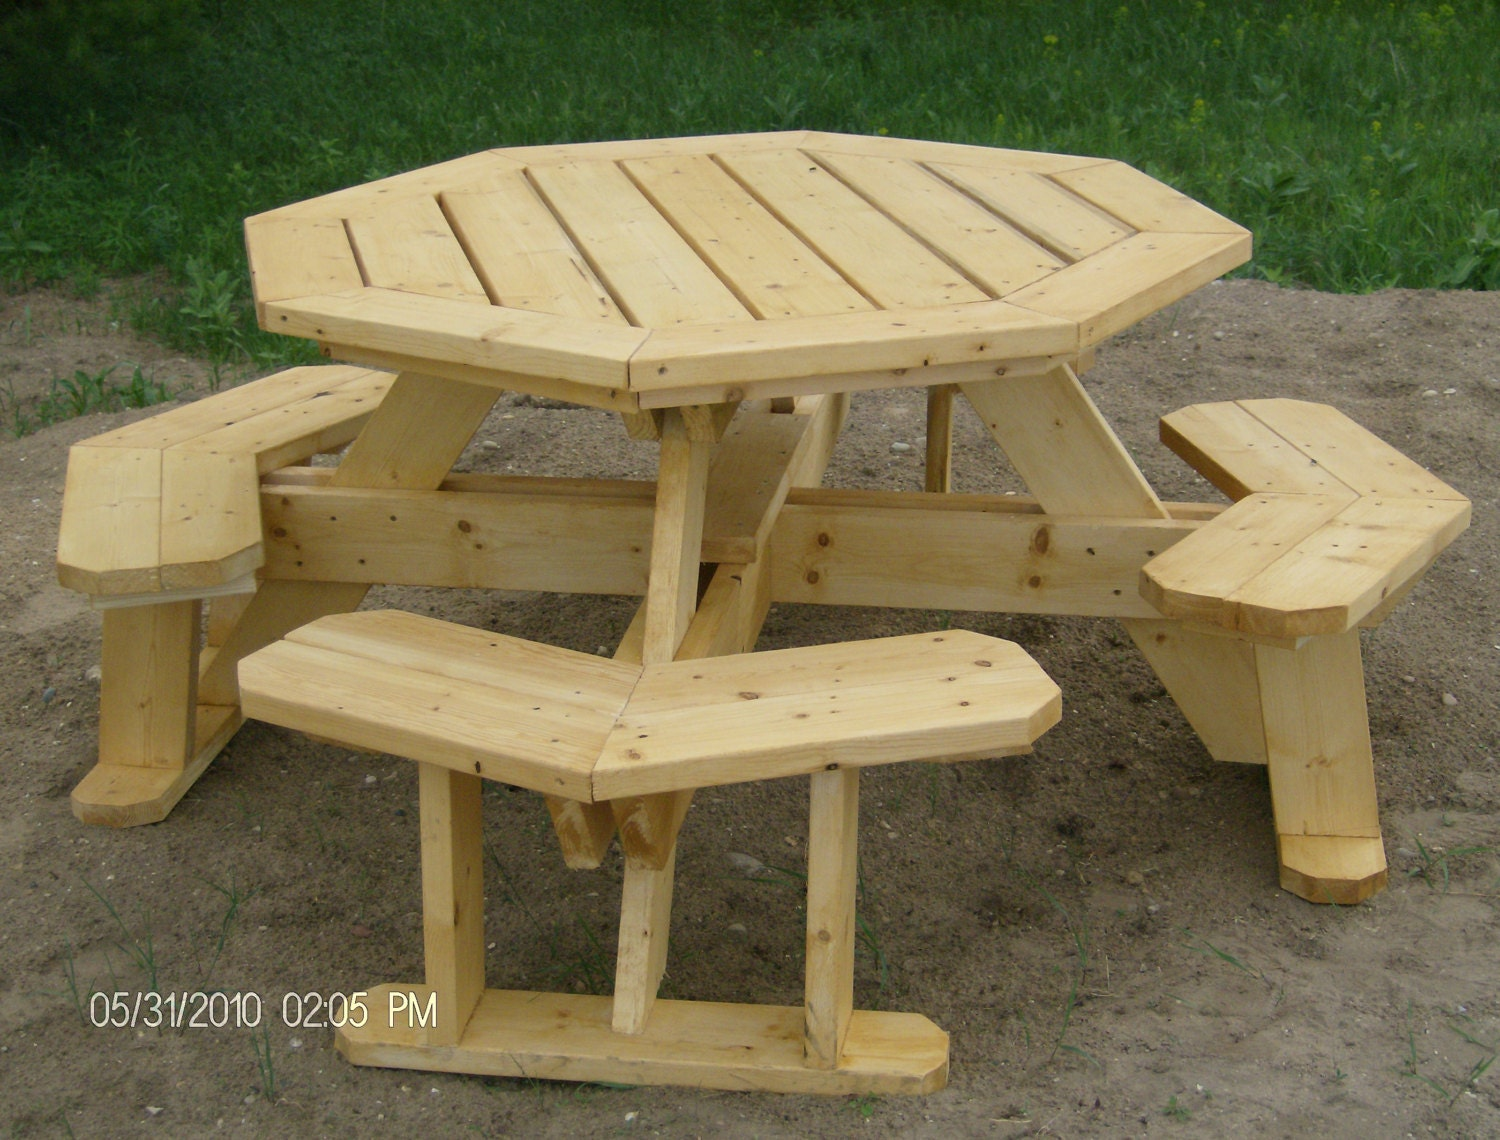 plans for building a octagon picnic table | Fine Woodworking Projects